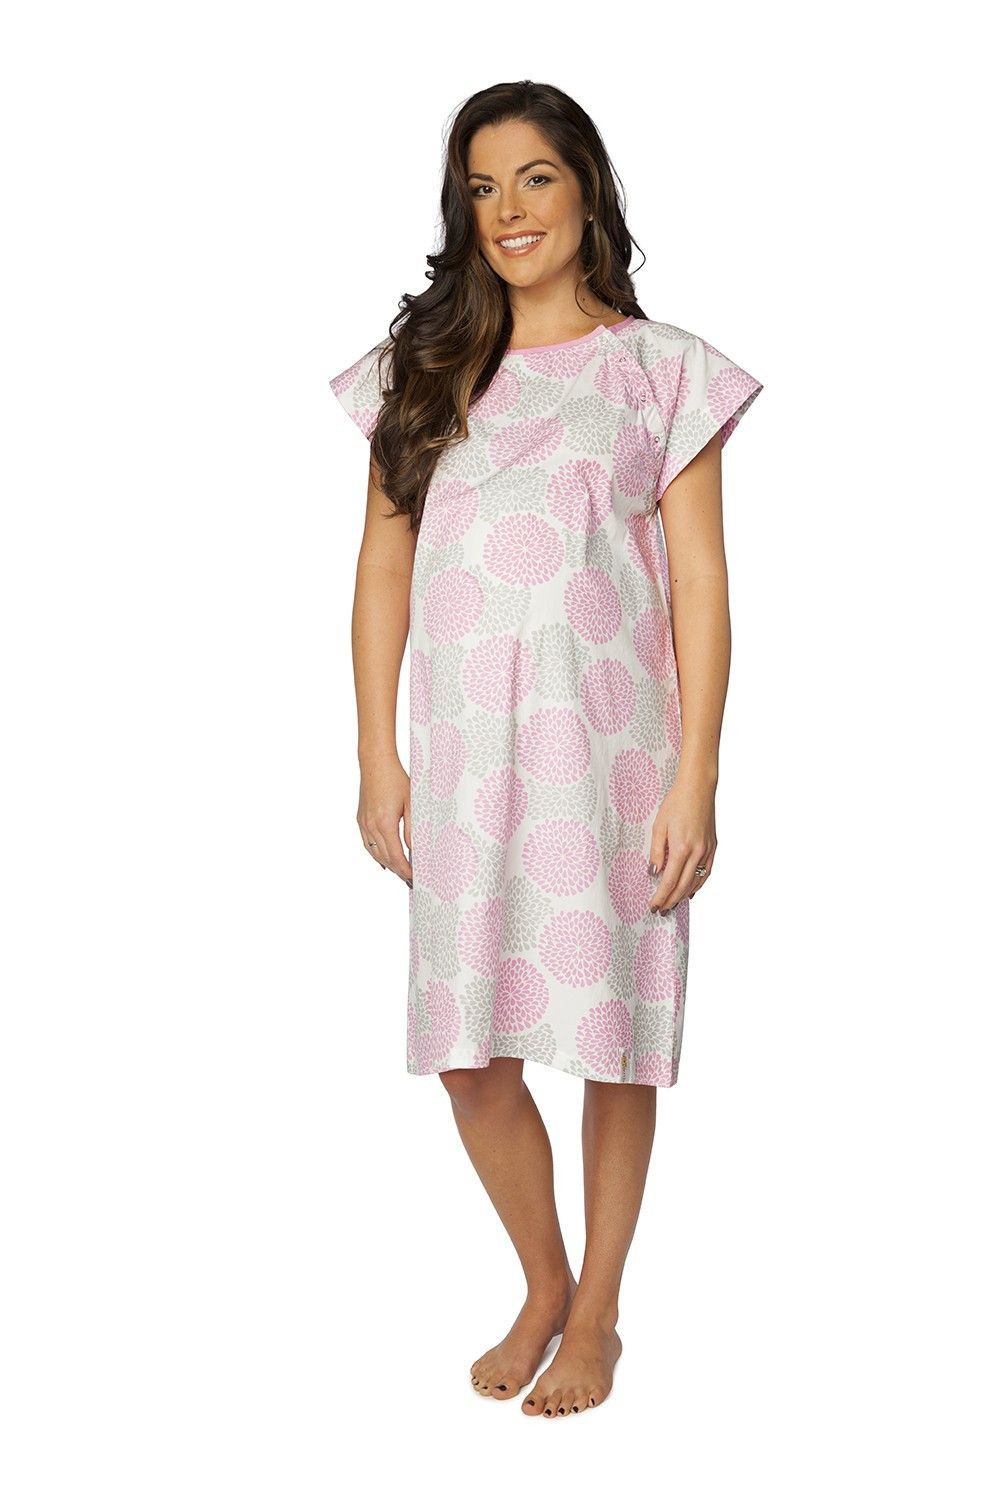 Lilly Gownies Labor & Delivery Gown | Birthing gown, Delivery gown ...